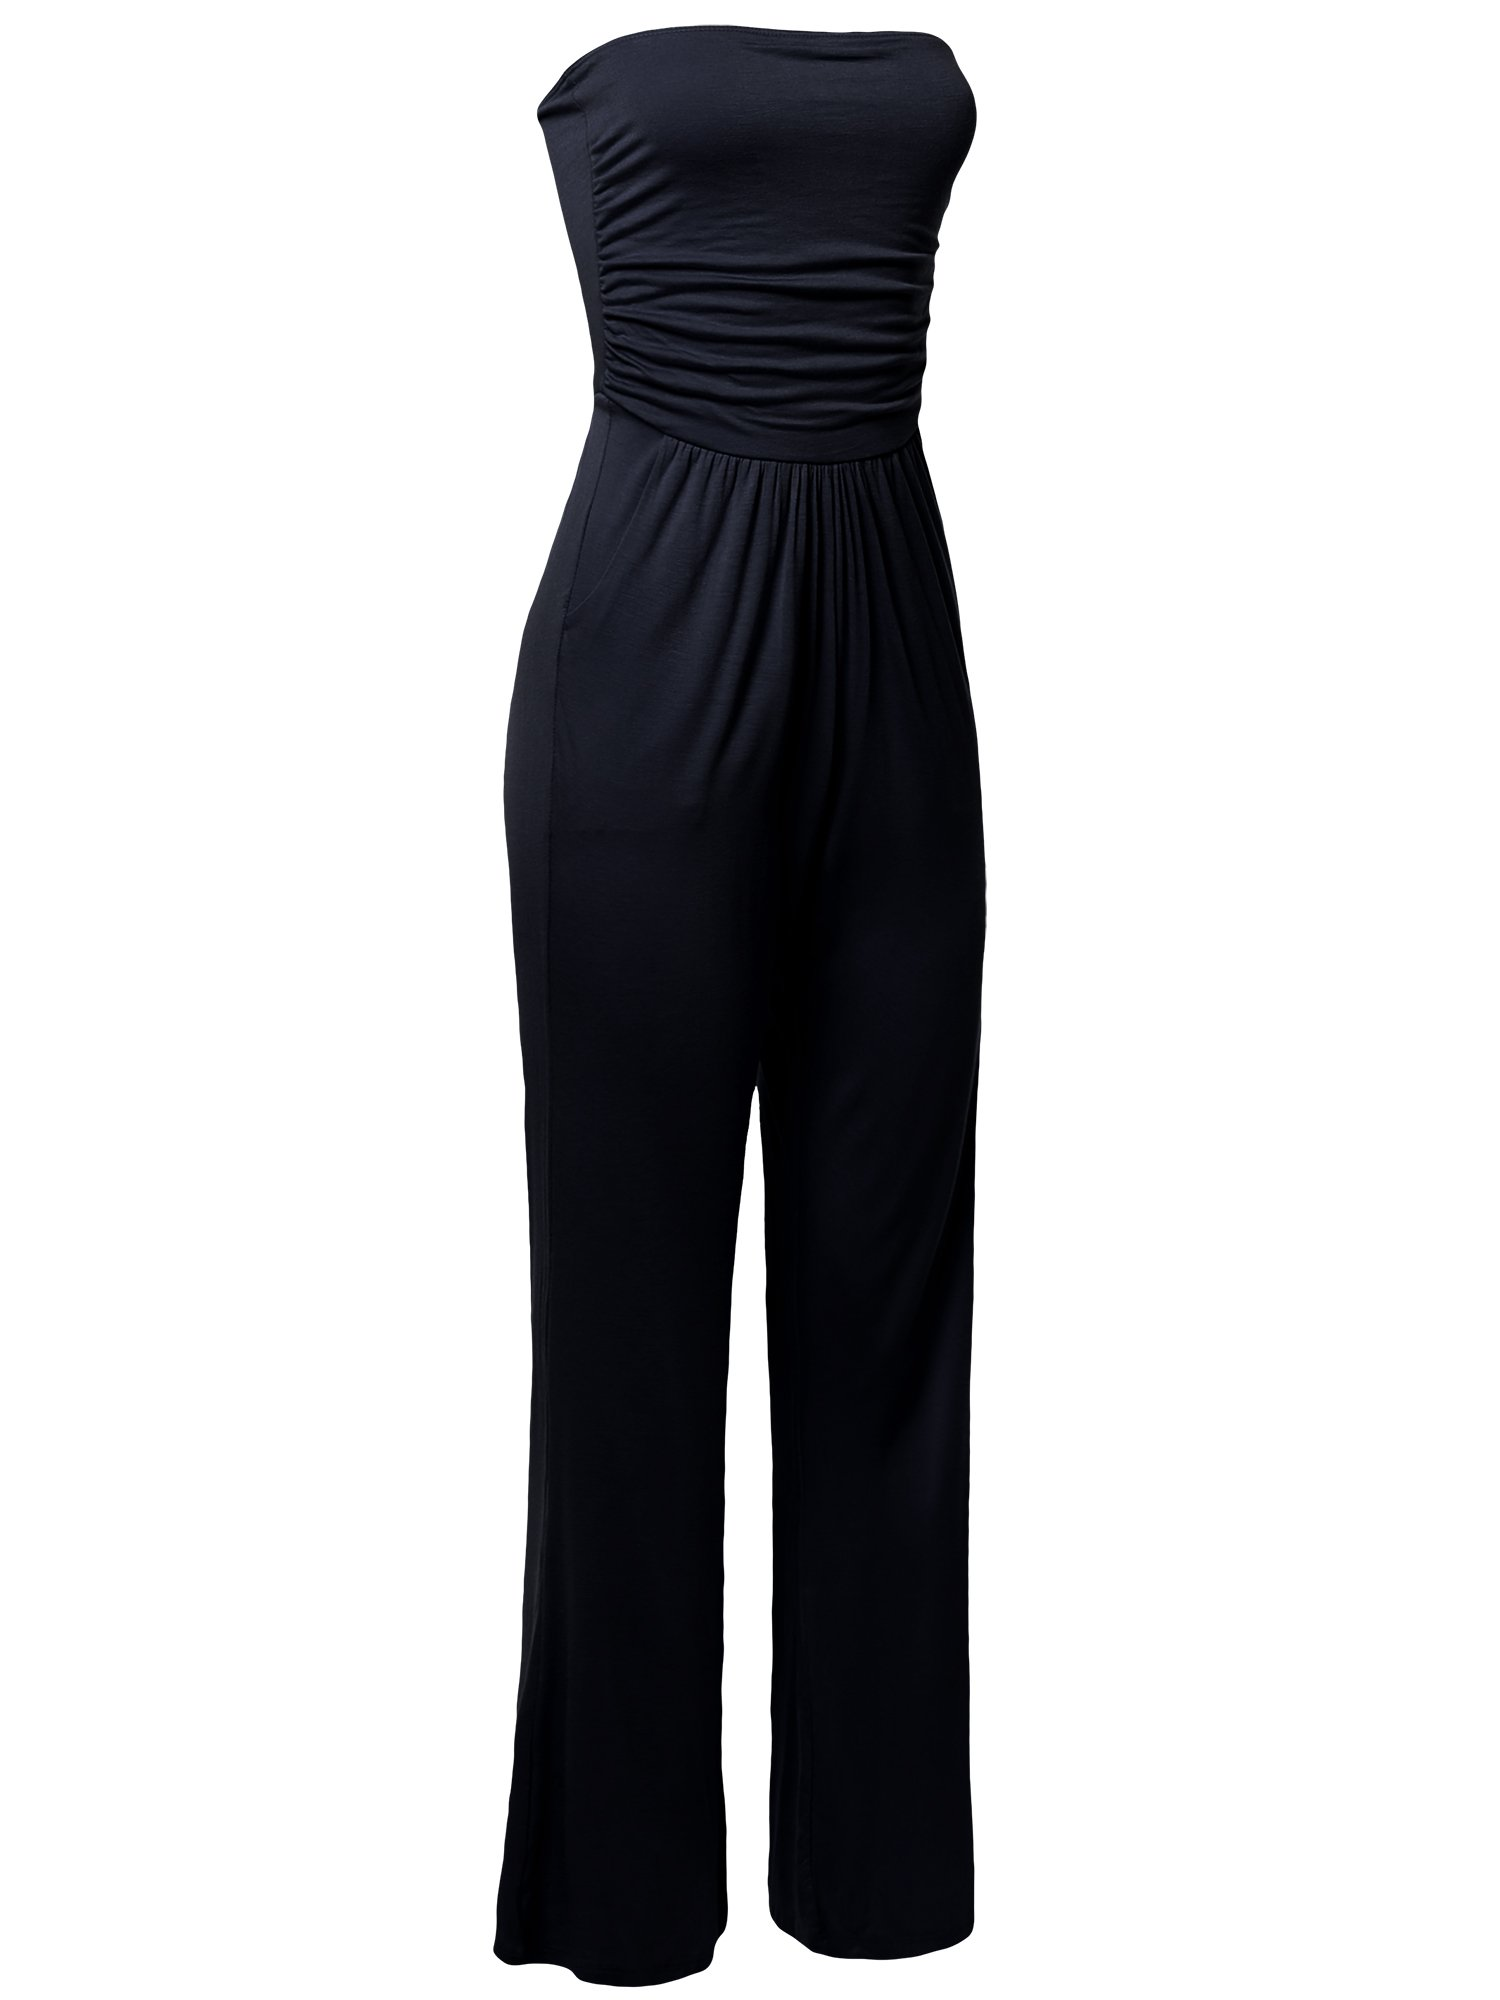 Made by Emma Casual Tube Top Strapless Stretchable Long Wide Leg Jumpsuit Navy S